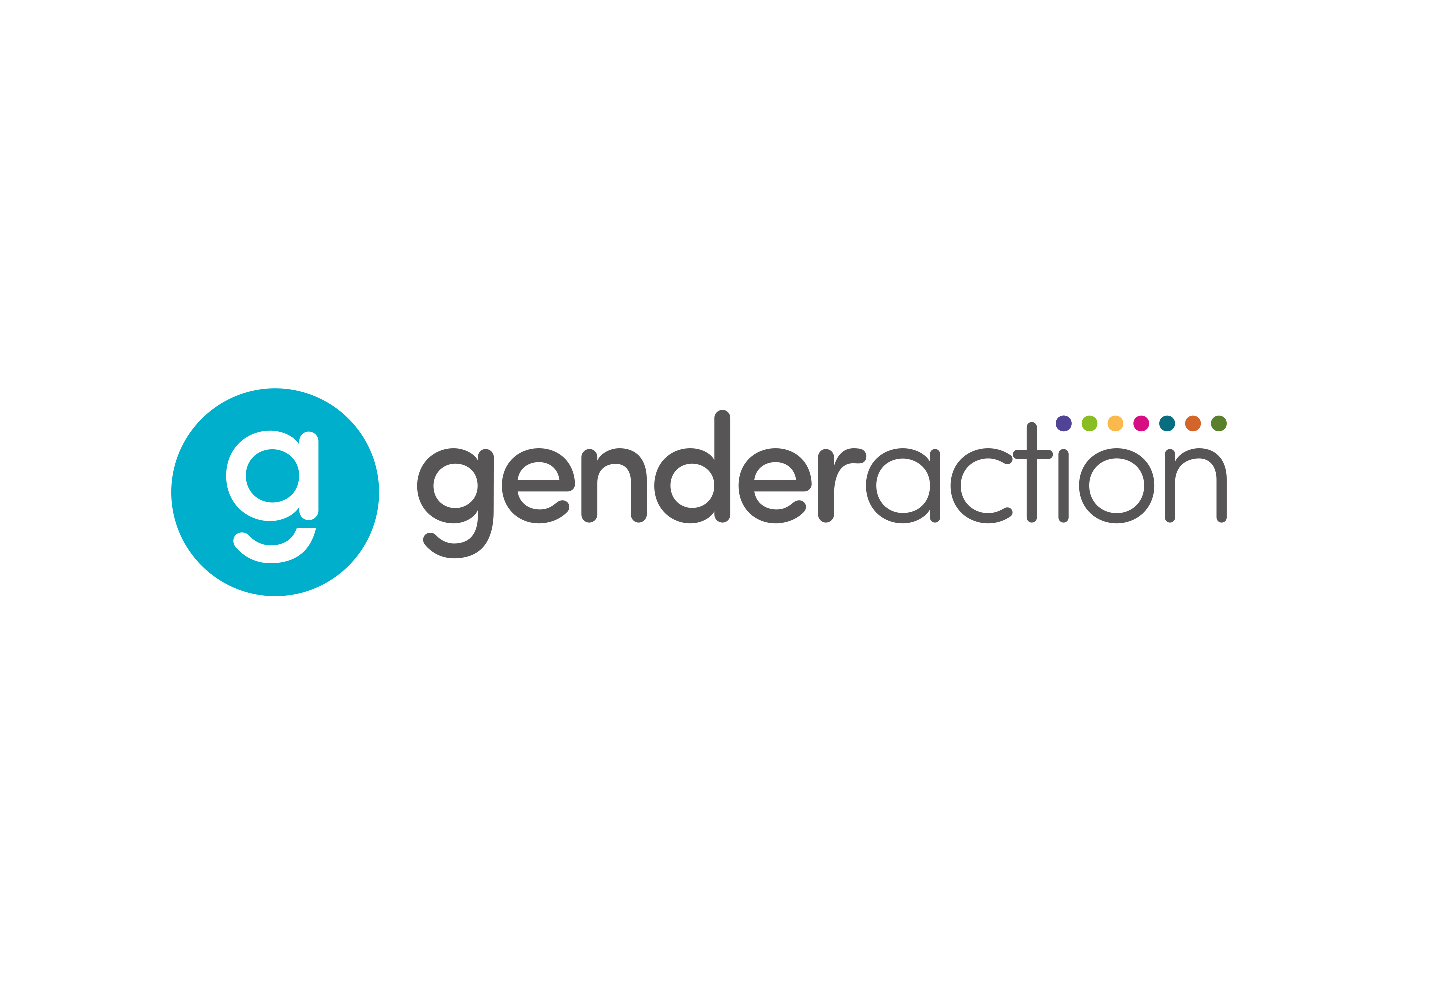 Gender Action logo_Awards intro.png